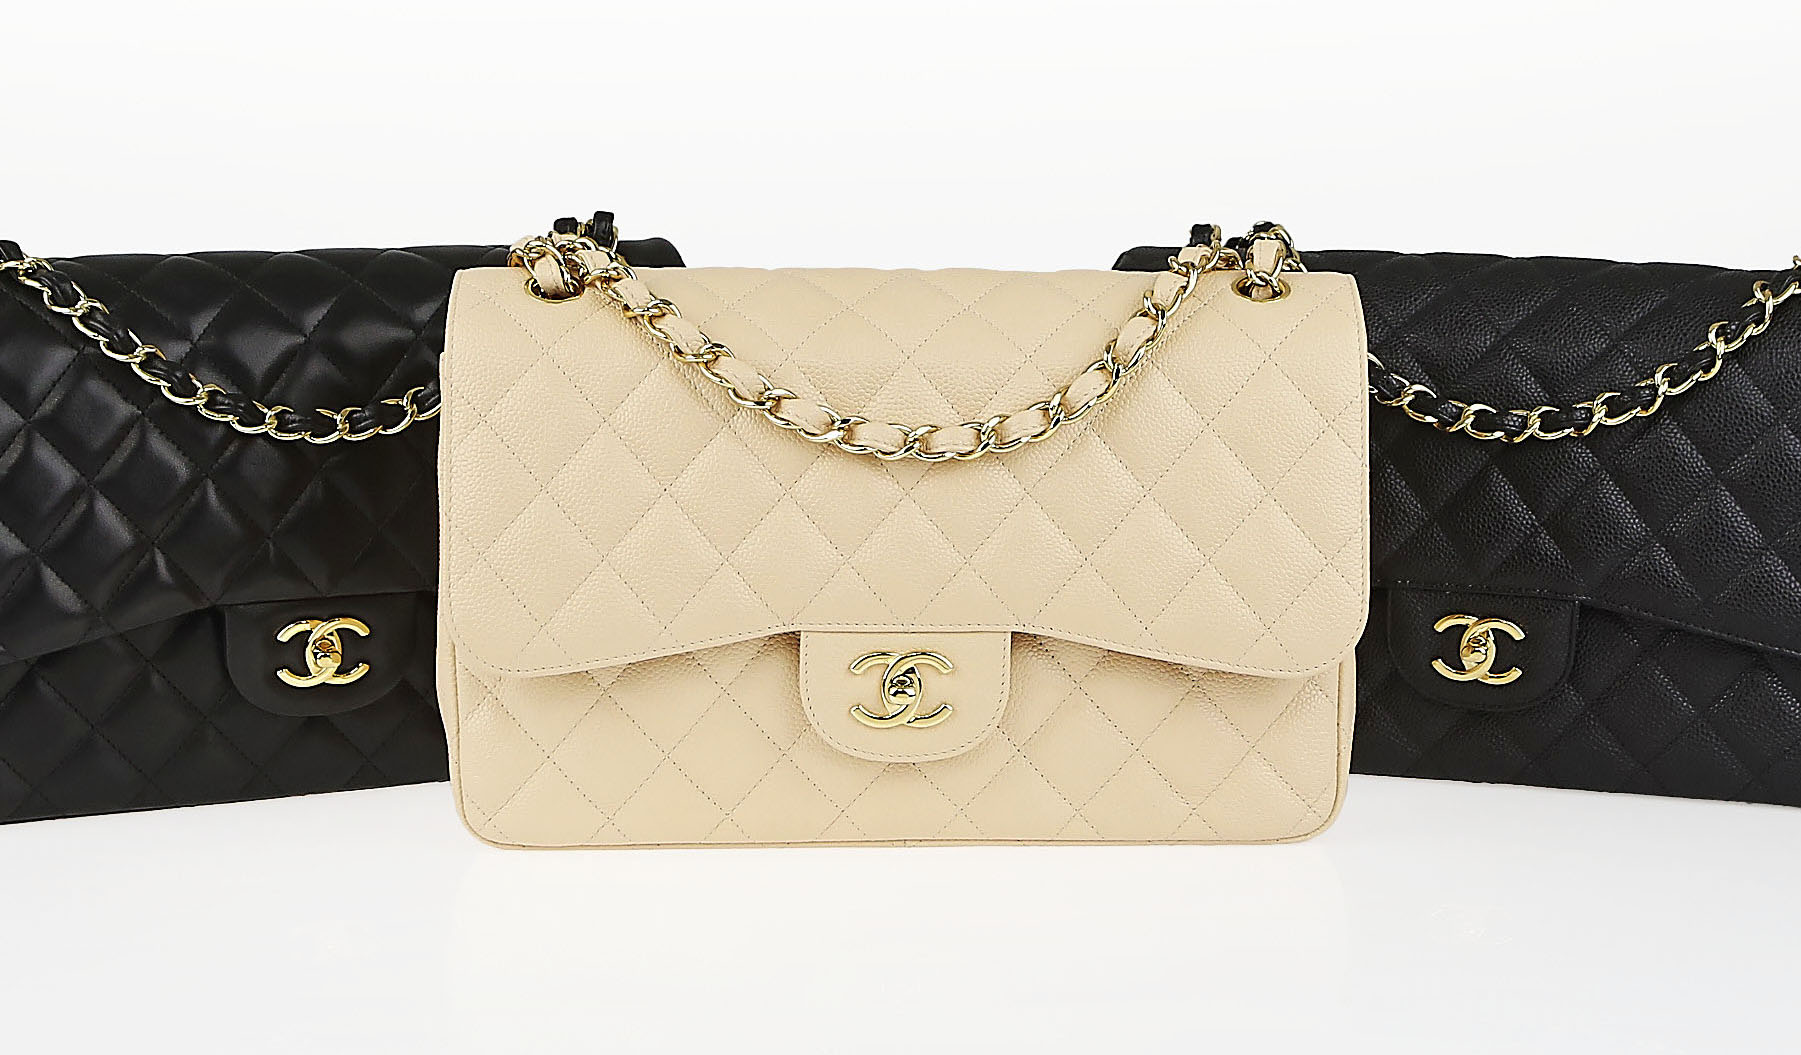 e417ba3f3638 Are Chanel Bags Made With Real Gold? - Yoogi's Closet Blog